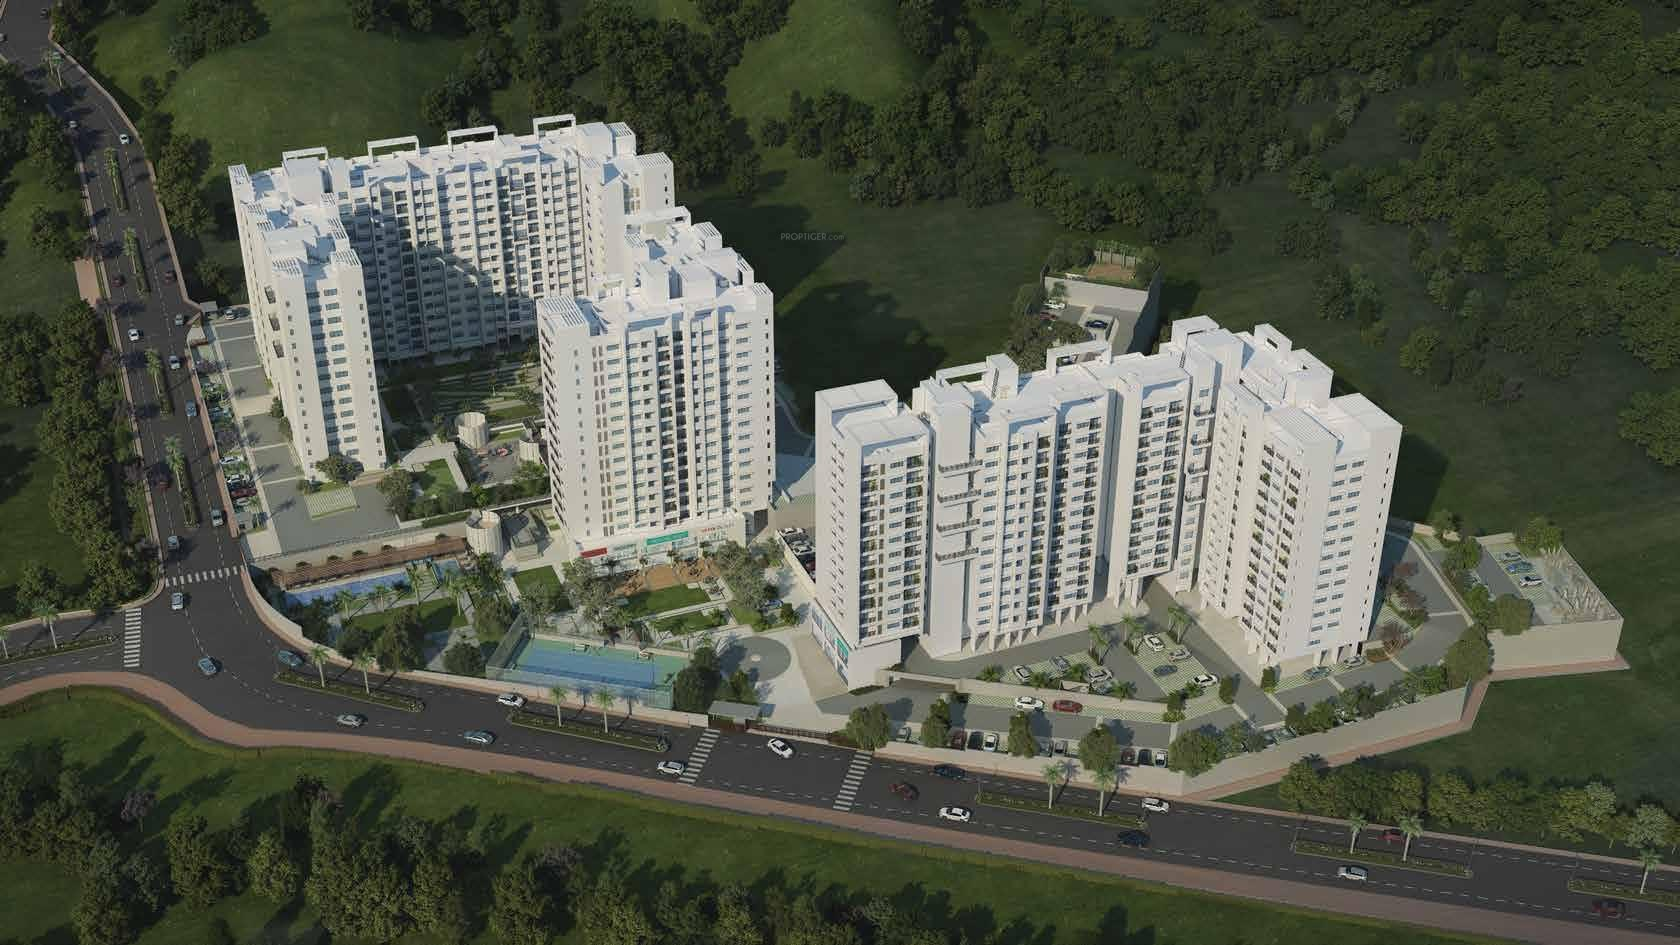 Godrej City image